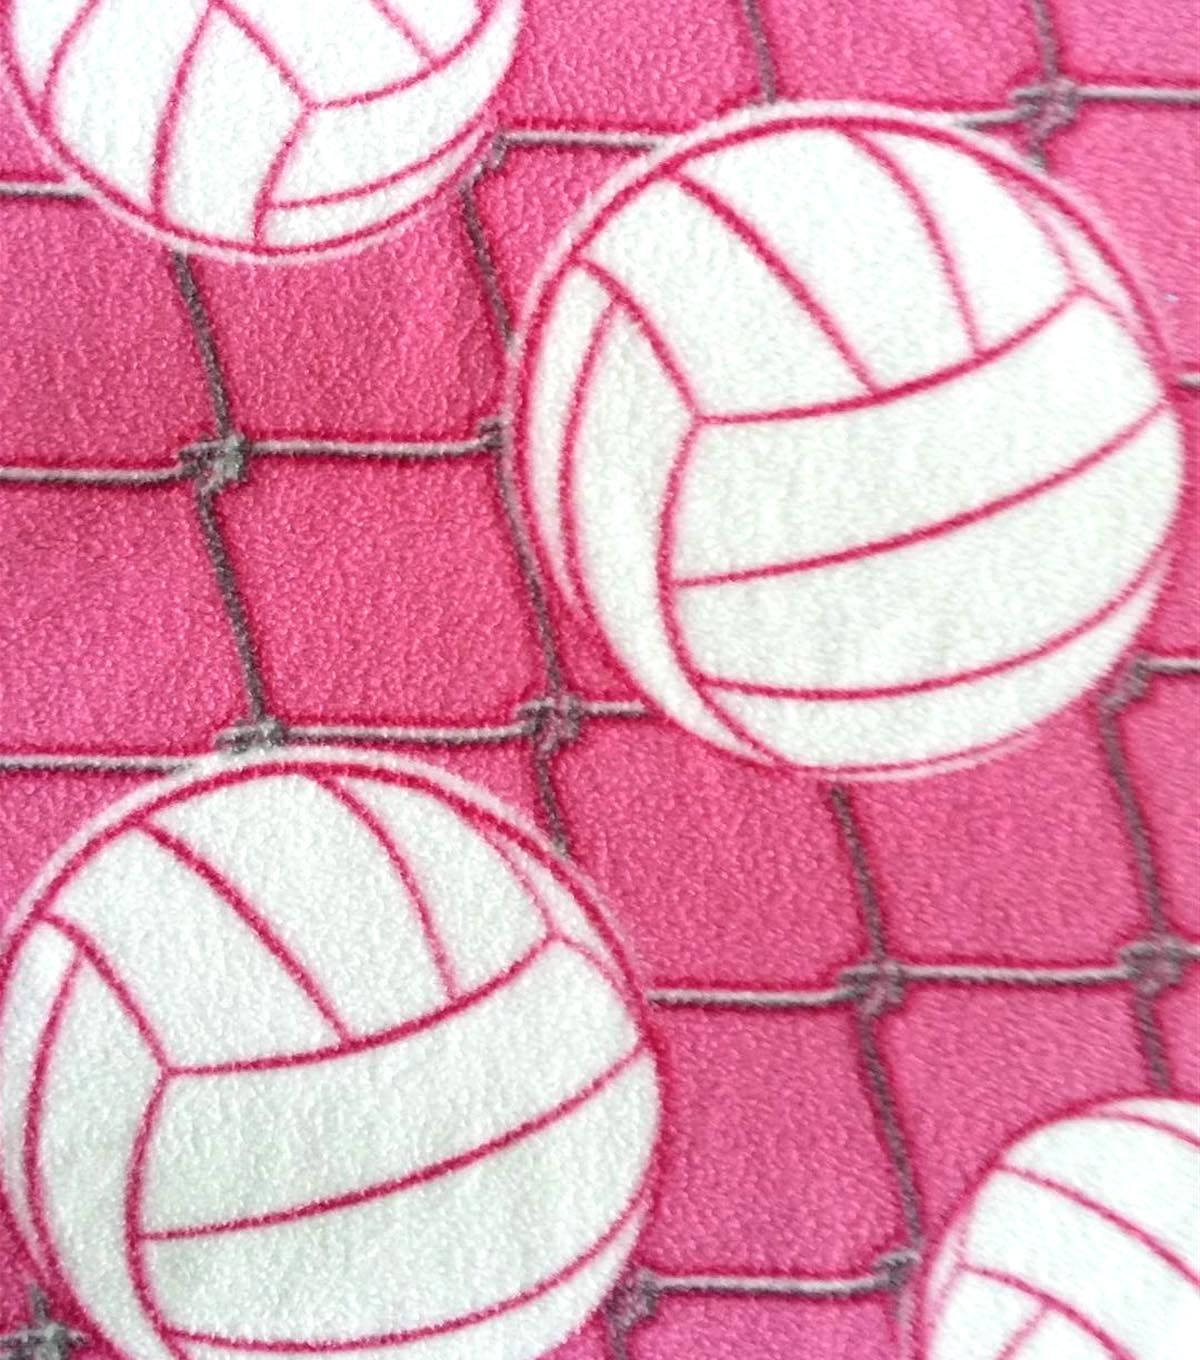 Antipill fleece fabric pink volleyballsantipill fleece fabric pink